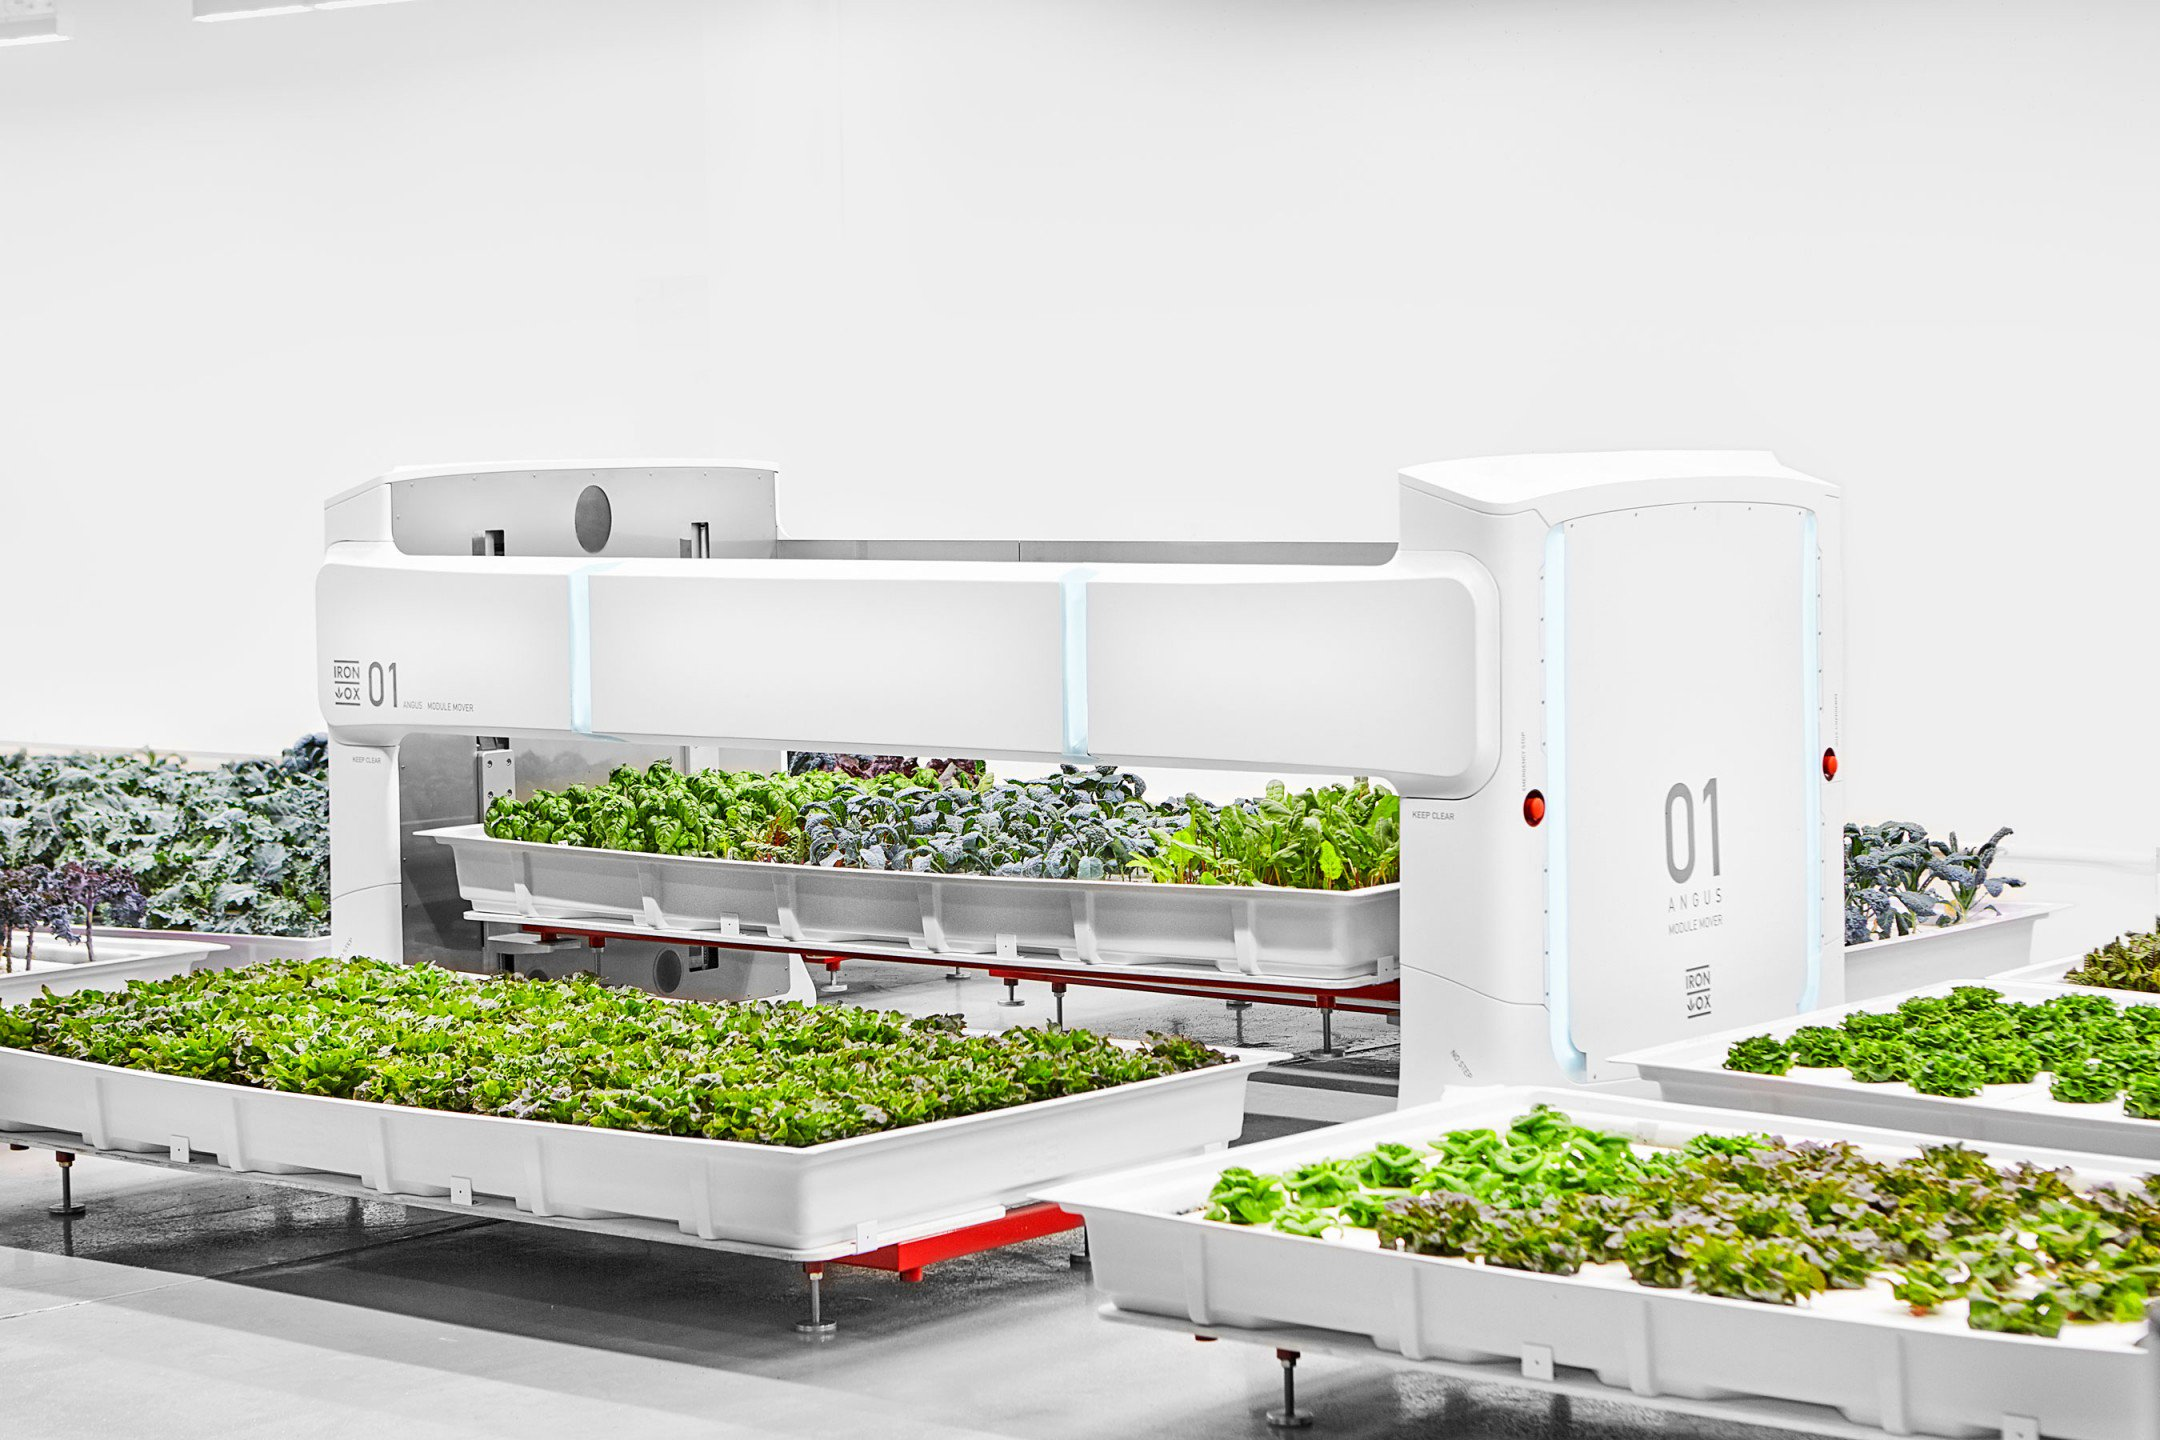 A robotic mover transfers a hydroponic container of leafy greens at Iron Ox's growing facility. (Courtesy: Iron Ox)